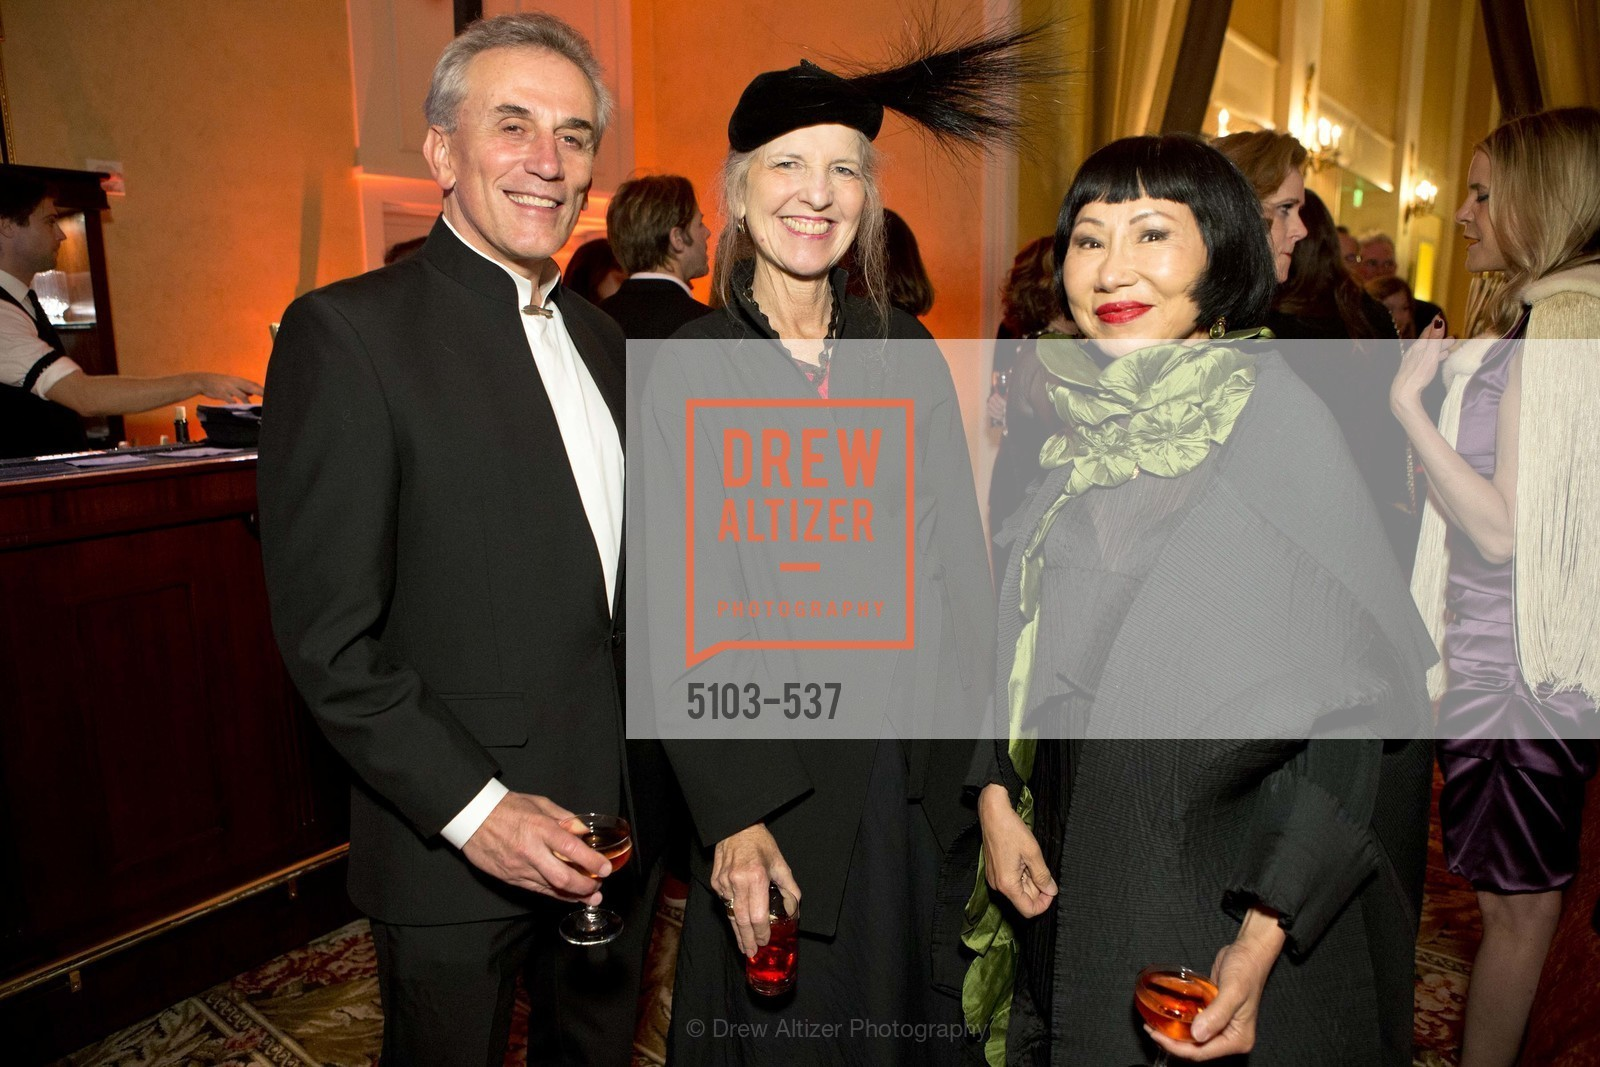 Lou DeMattei, Leah Garchik, Amy Tan, TOP OF THE MARK'S 75TH Anniversary Party, US, November 6th, 2014,Drew Altizer, Drew Altizer Photography, full-service agency, private events, San Francisco photographer, photographer california